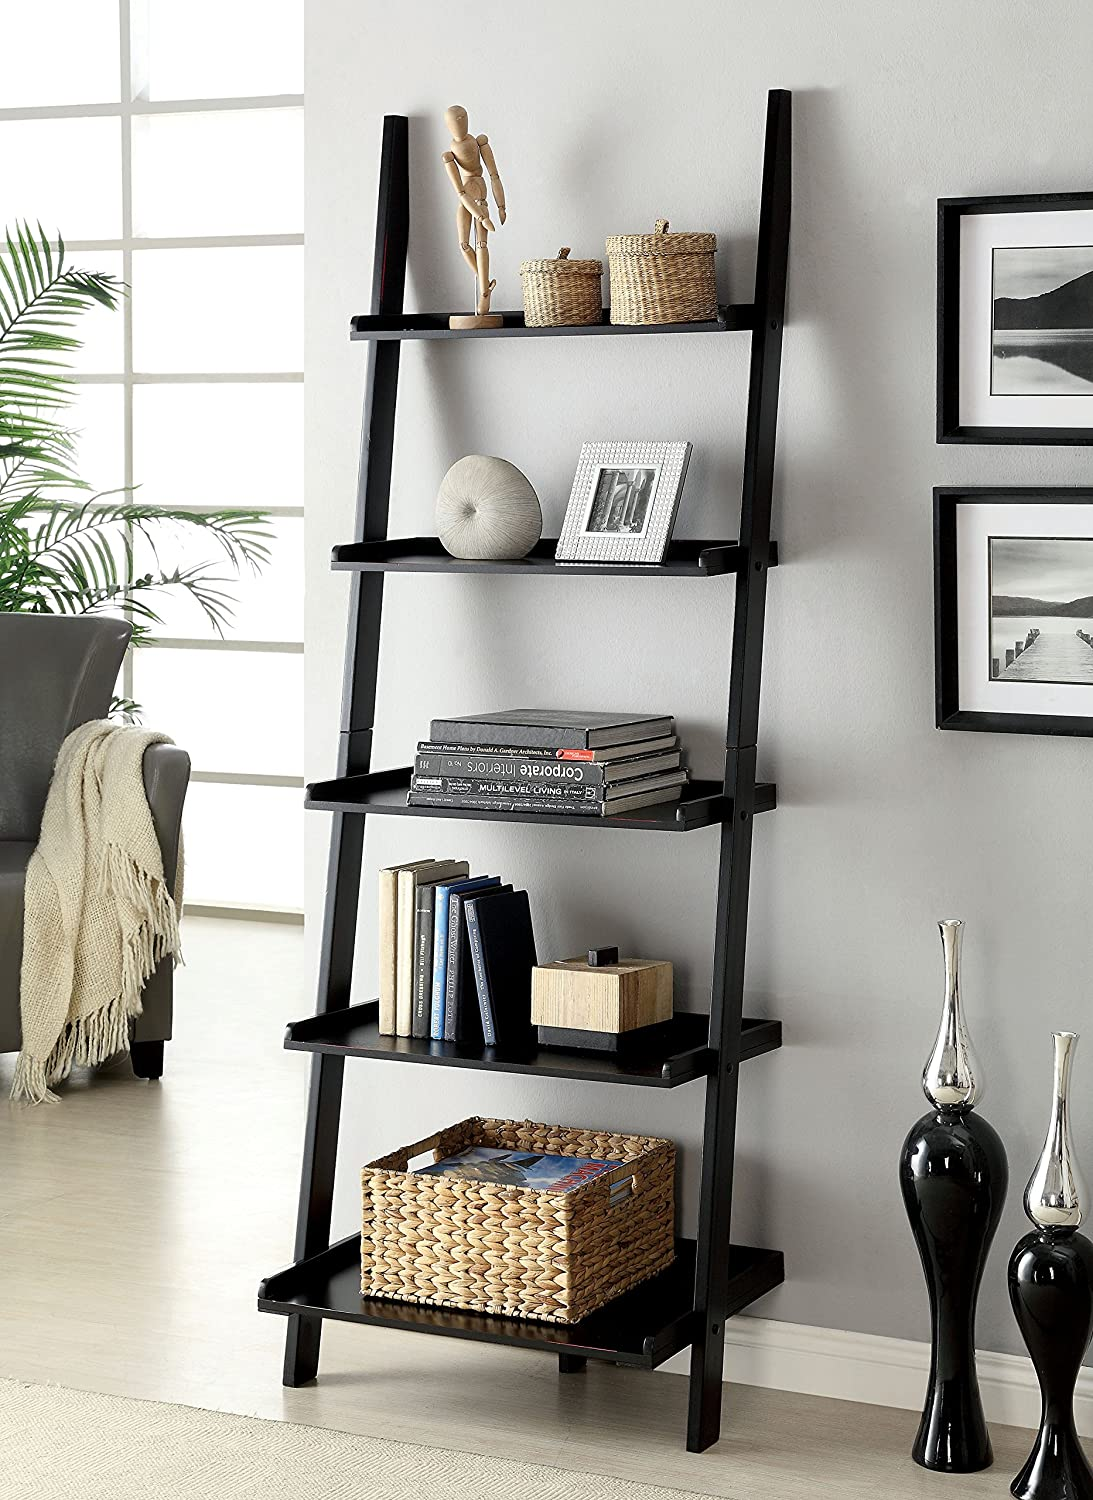 ip com black tier metal tiered walmart bookshelf mainstays